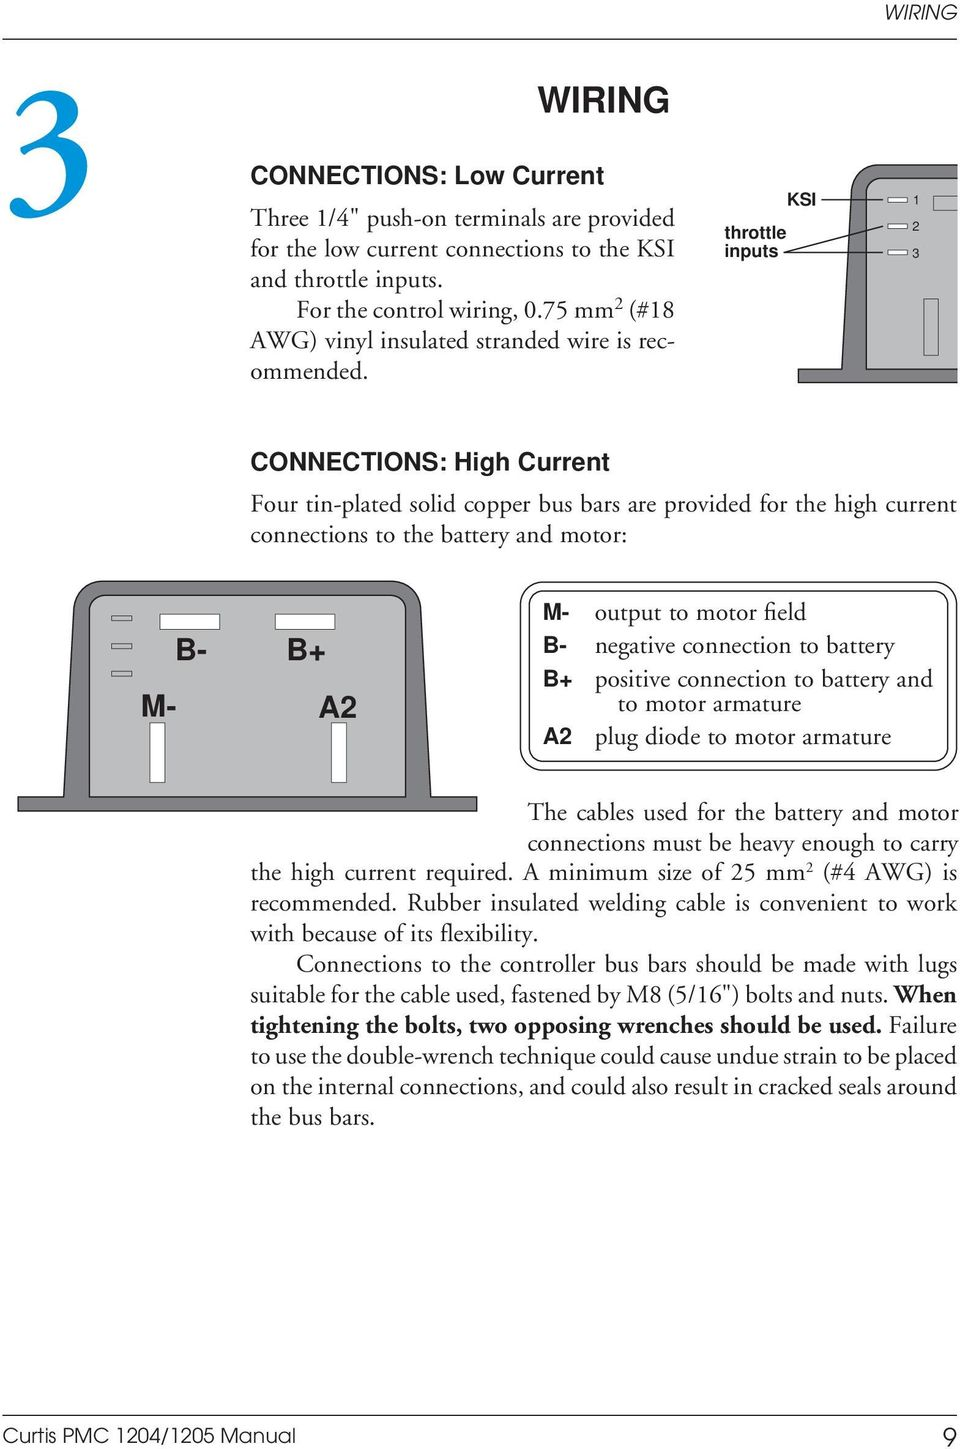 Manual 1204 5 Motor Controllers Curtis Pmc Pdf Dc Controller Wiring Diagram Repalcement Parts Throttle 2 Inputs 3 1 Connections High Current Four Tin Plated Solid Copper Bus 16 Control